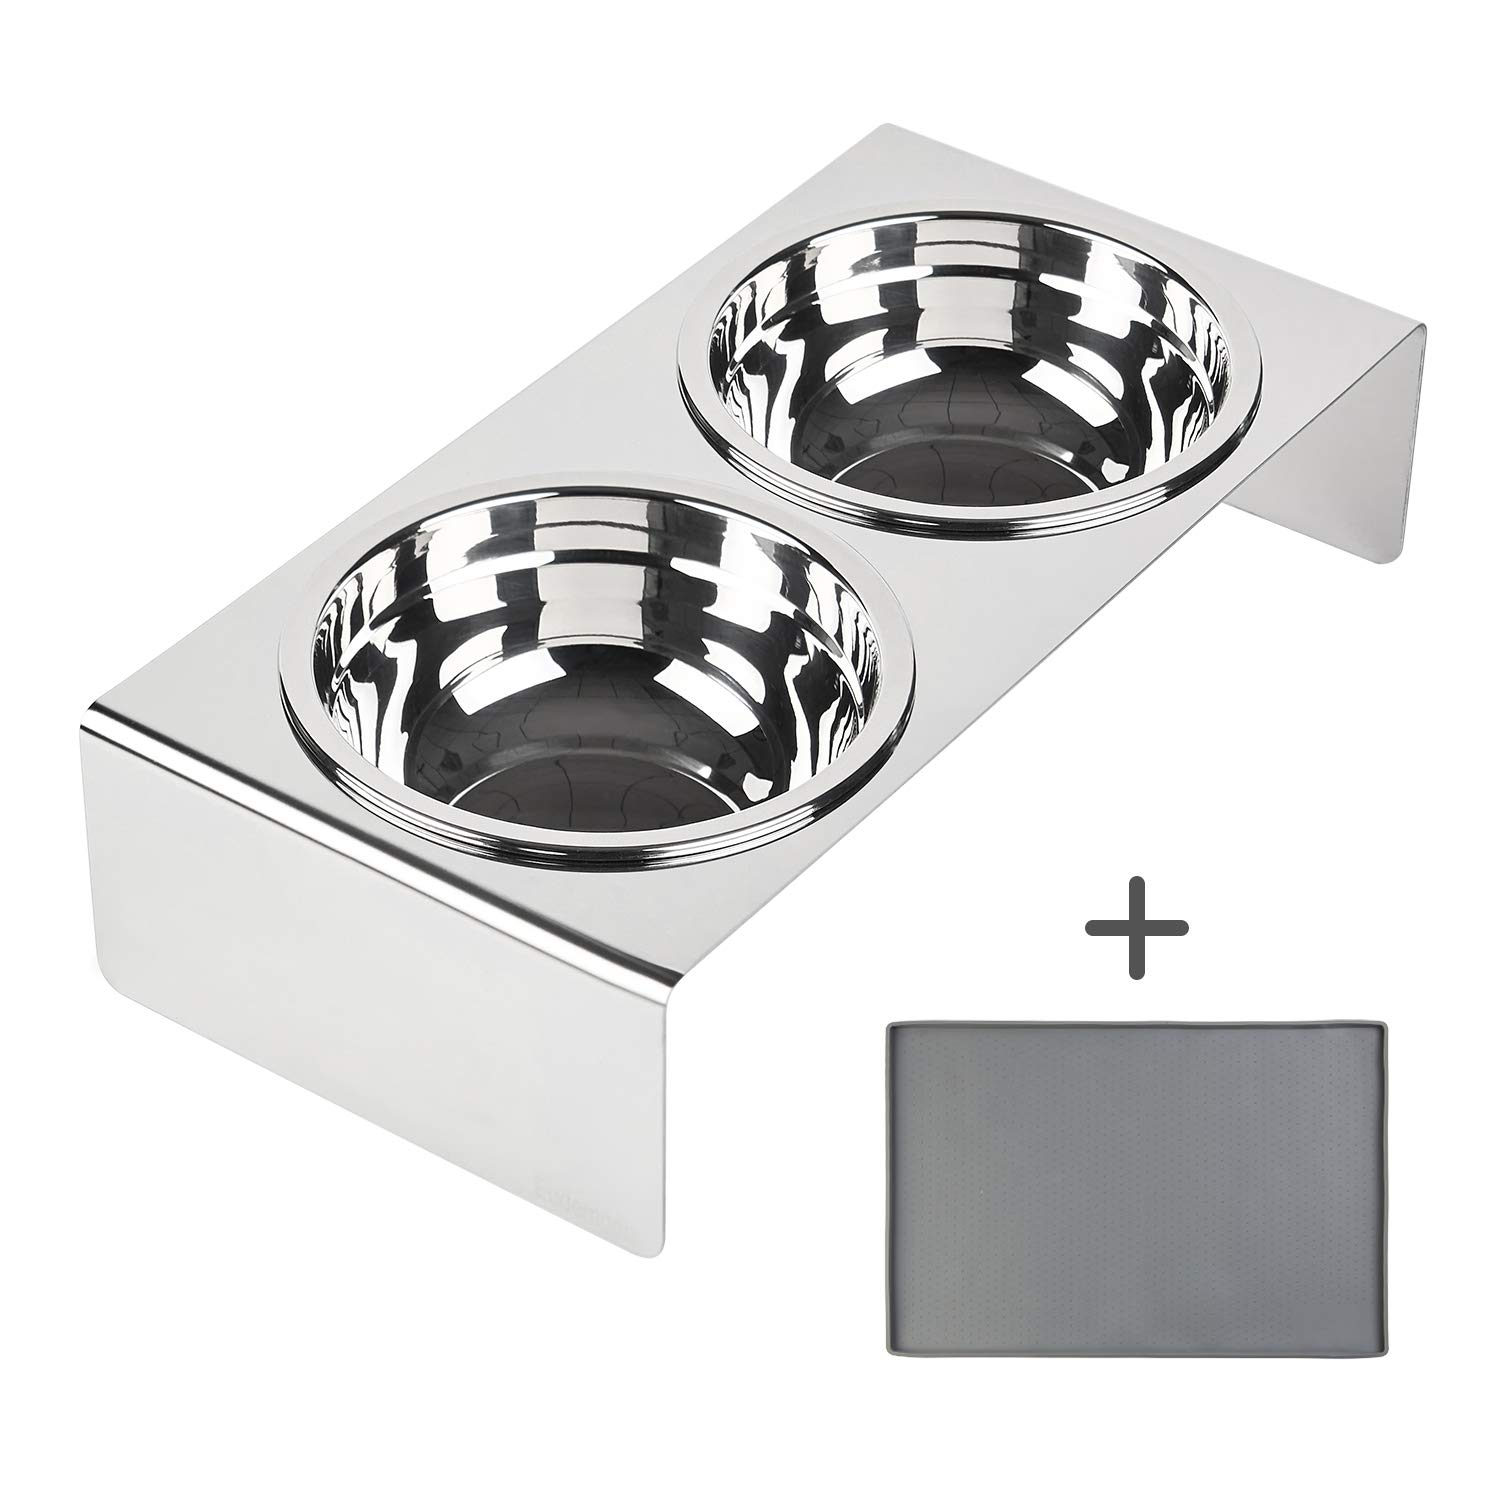 Eudemonia 4'' Stainless Steel Elevated Cats & Dogs Food Bowls with Silicone Food Mat, Raised Pet Feeder for Kitten&Puppy&Small Dogs by Eudemonia